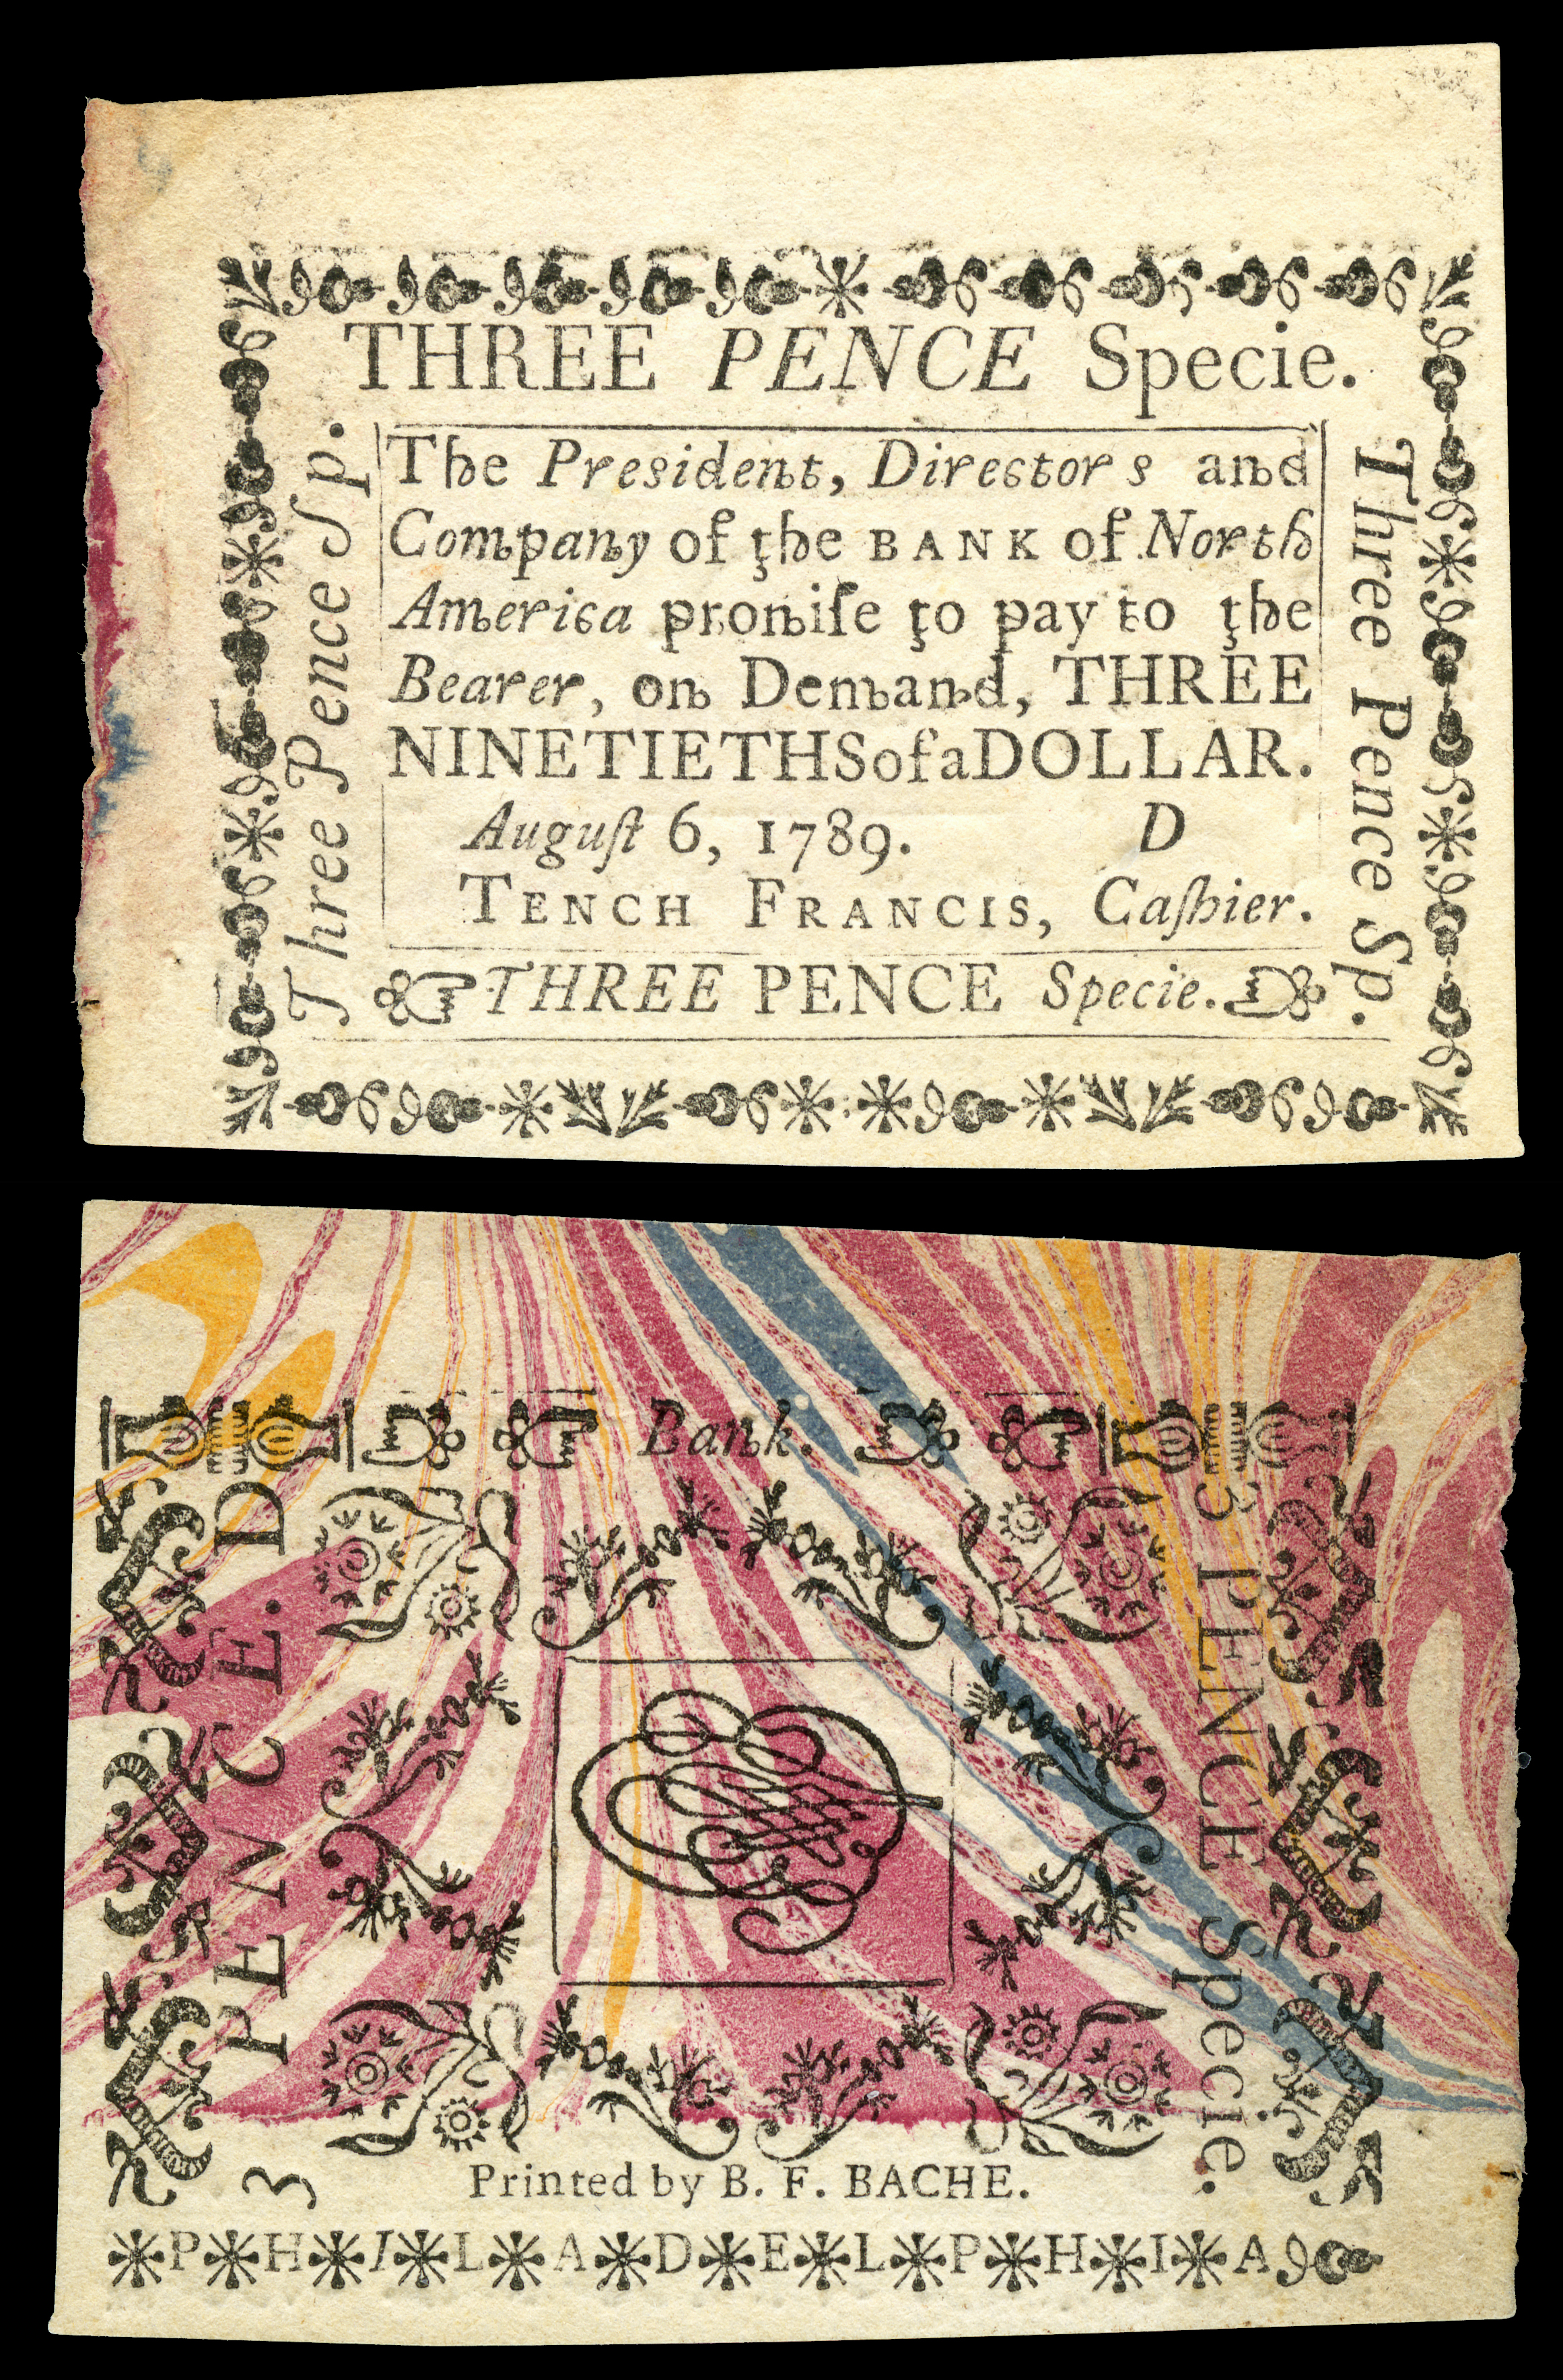 Three pence Colonial currency from the Province of Pennsylvania issued by the Bank of North America, 6 August 1789. Printed by Benjamin Franklin Bache on marbled paper obtained by Benjamin Franklin. Engraved signature of Trench Francis.